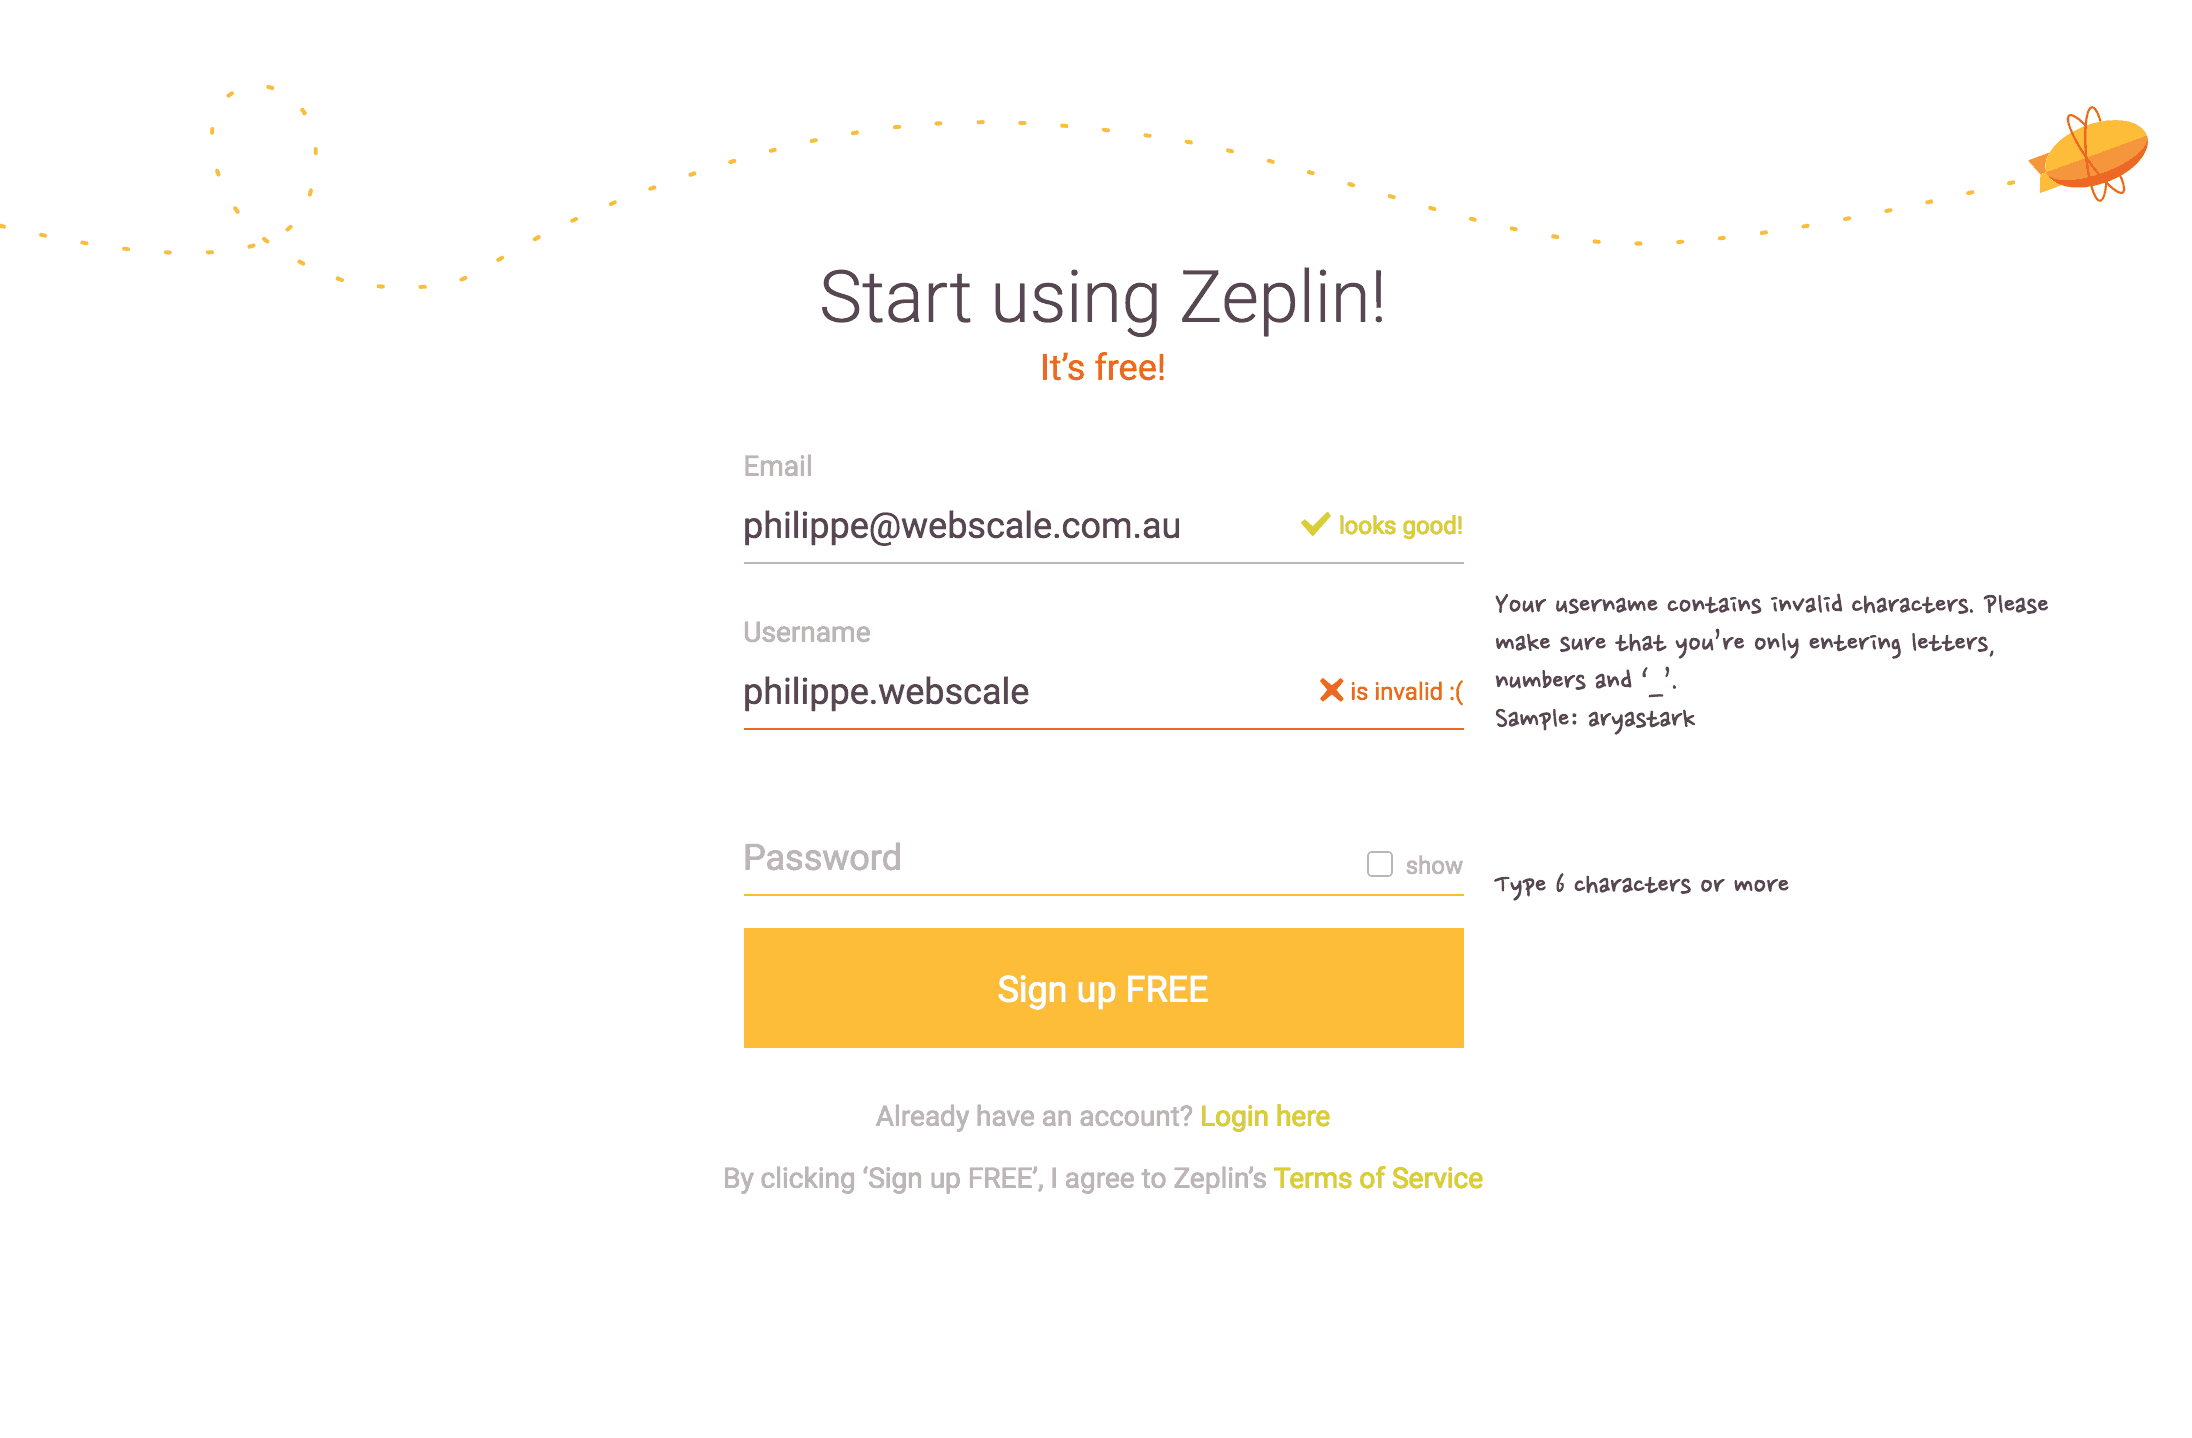 Zeplin-Login Error